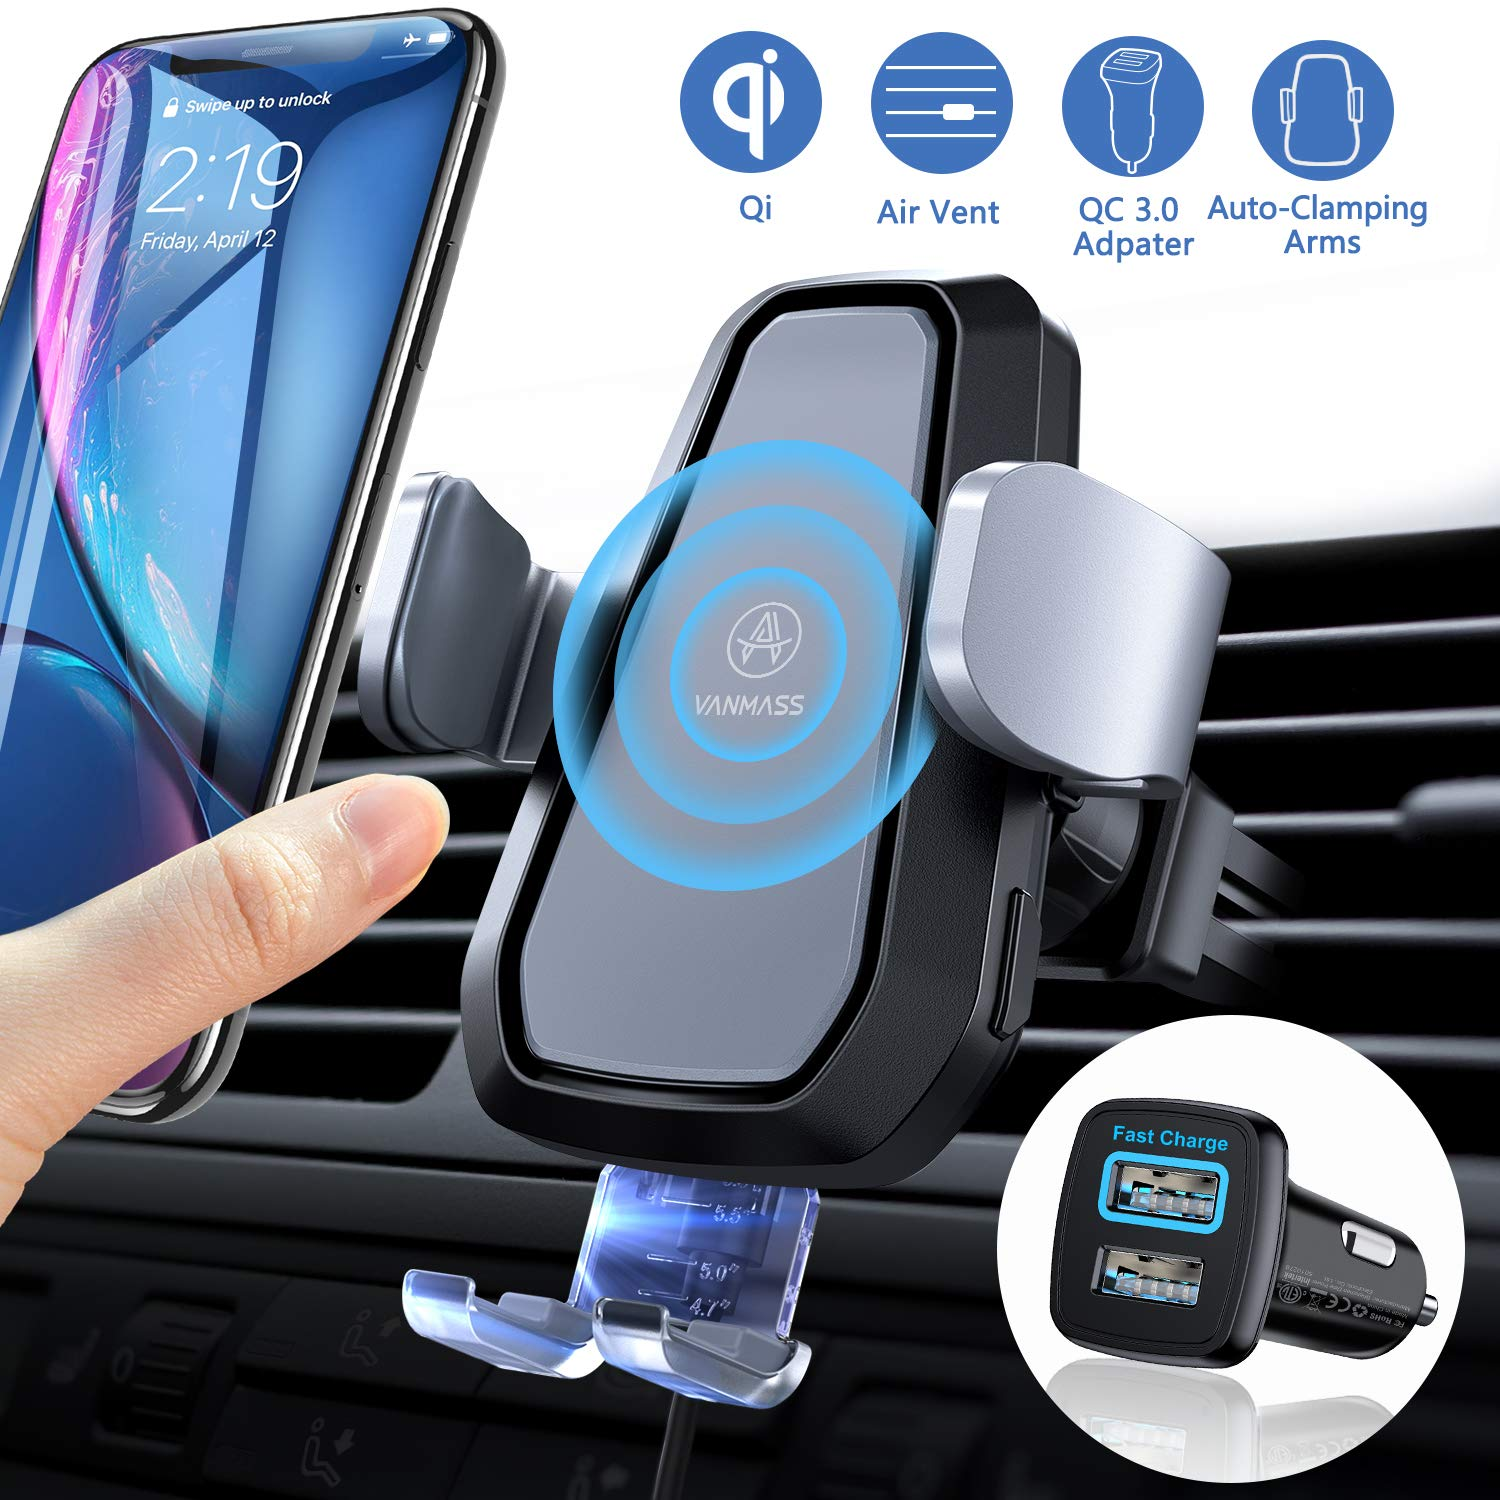 VANMASS Wireless Car Charger Mount, Automatic Clamping 10W 7.5W Qi Fast Charging Mount, Air Vent Phone Holder with QC 3.0 Fast Charger, Compatible with iPhone 11 Pro Max Xs X 8, Samsung S10 S9 Note 10 by VANMASS